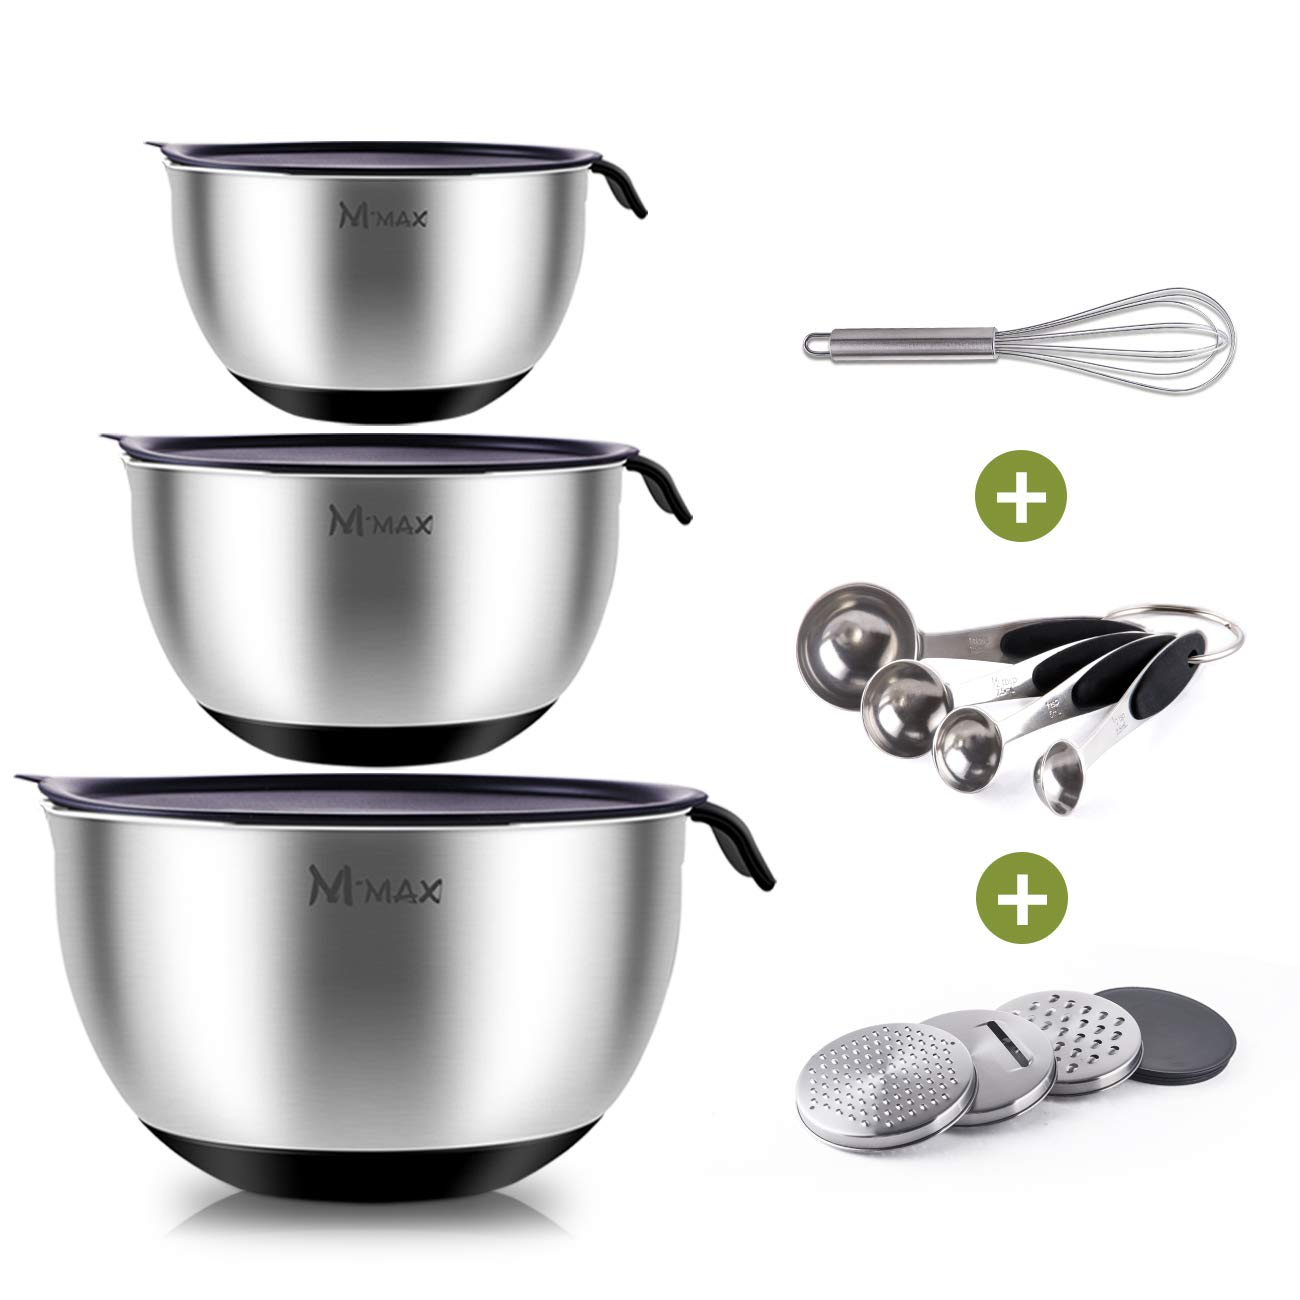 M-Max 3 Piece Stainless Steel Mixing Bowls with Lids, 3 Graters, Whisk and 4 Measuring Spoons